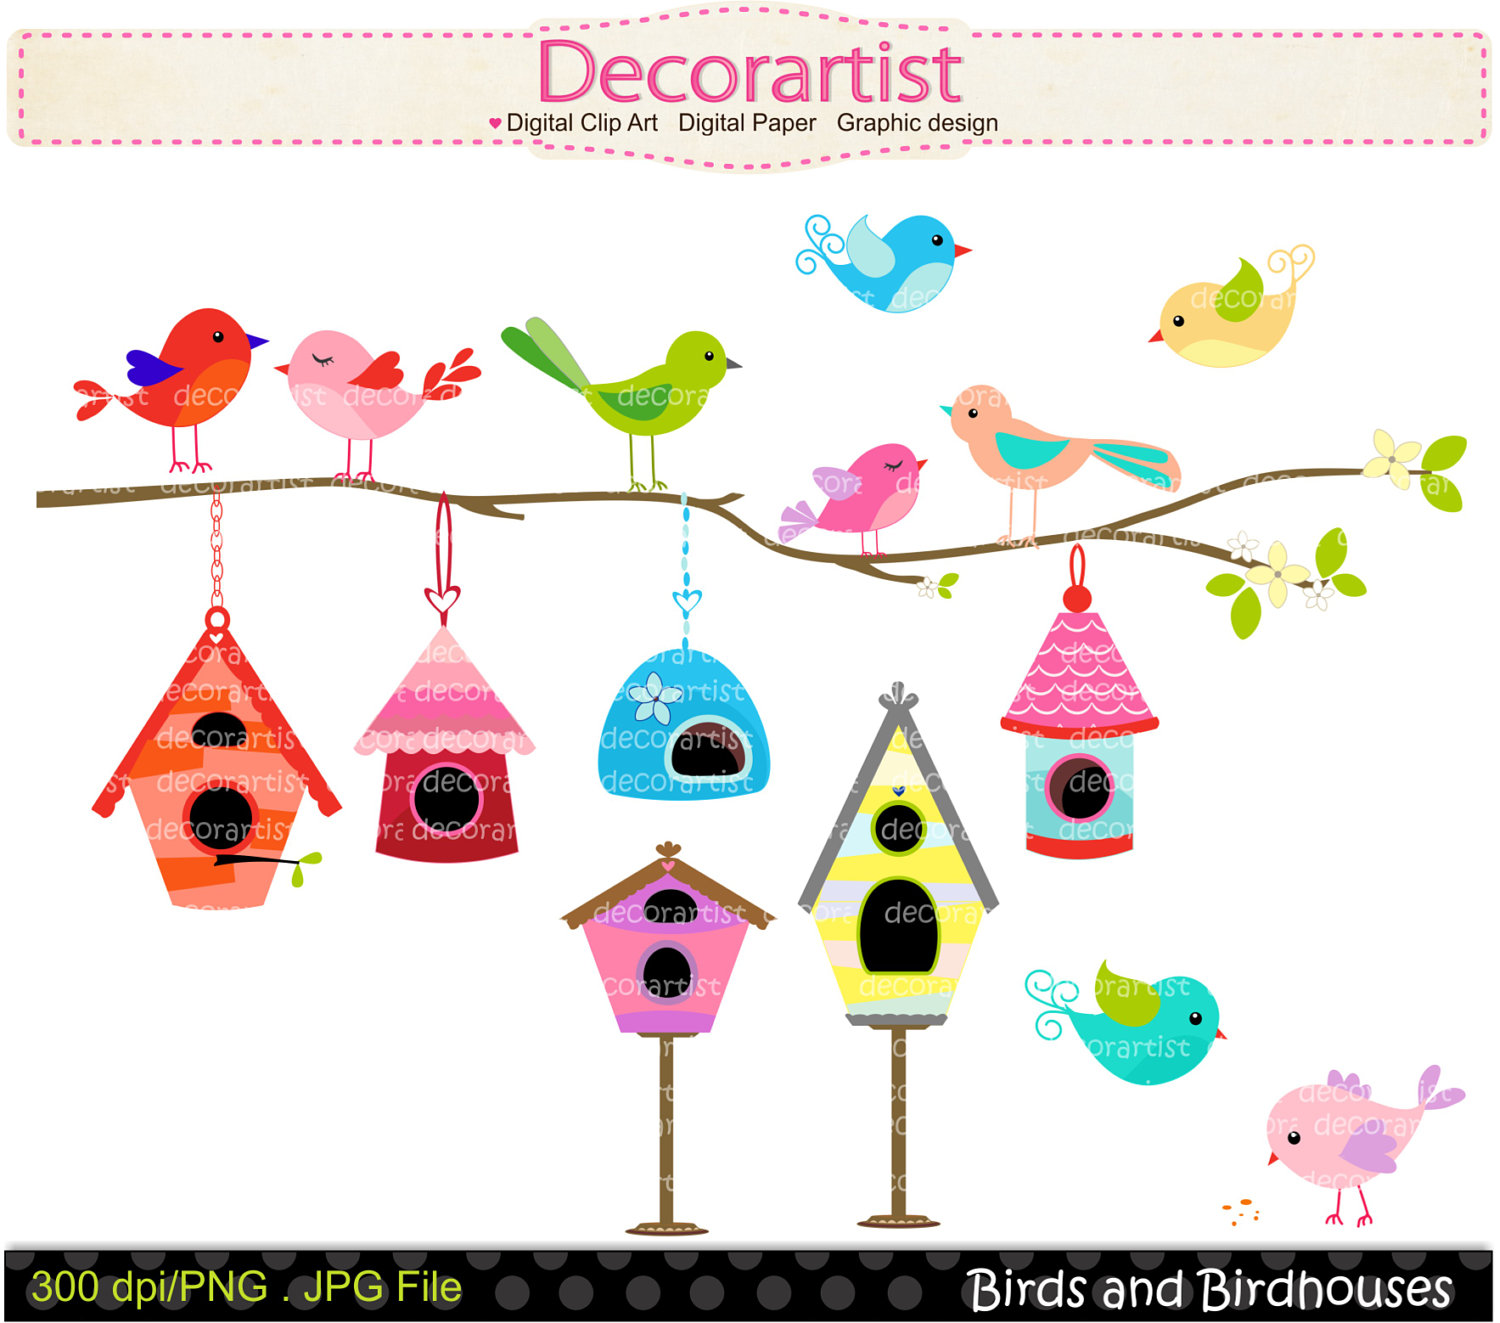 Birdhouse clipart whimsical. Free border cliparts download